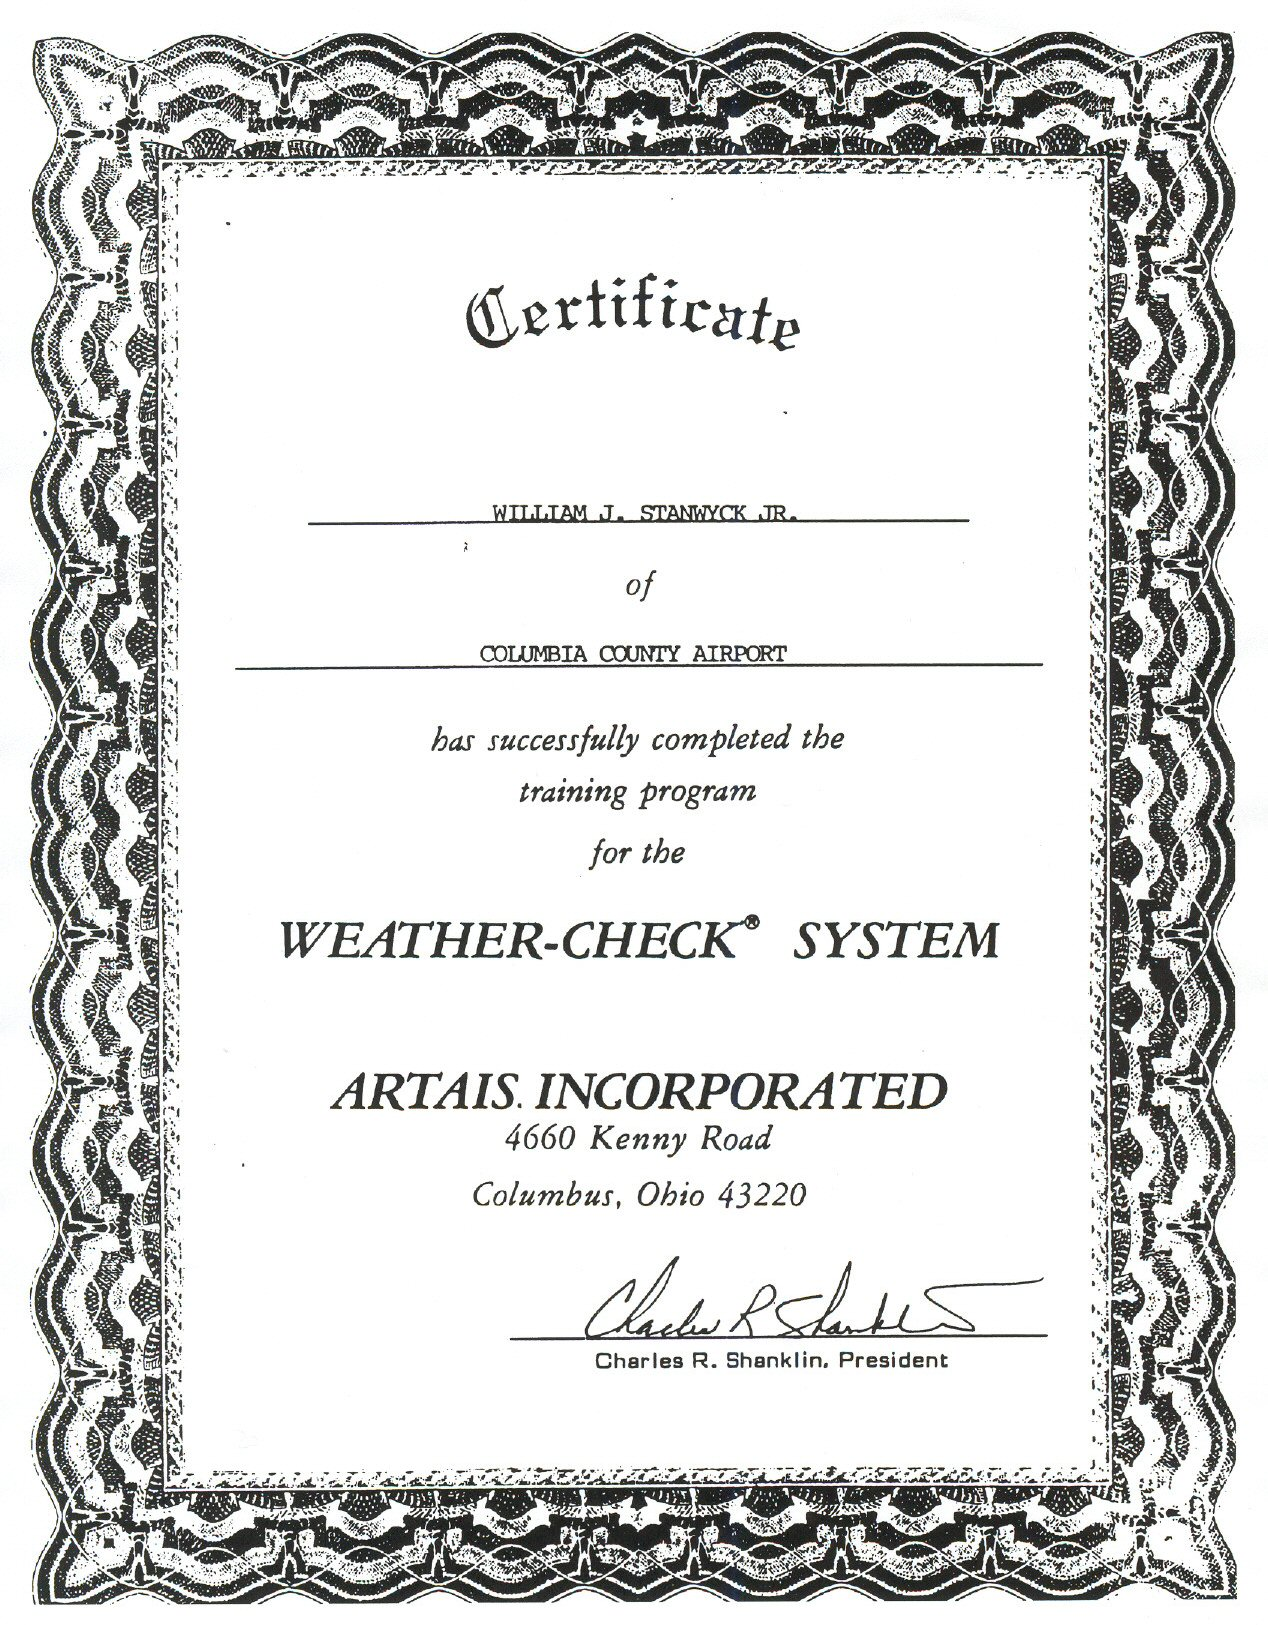 Stanwyck avionics certificate of completion of artais awos training xflitez Image collections